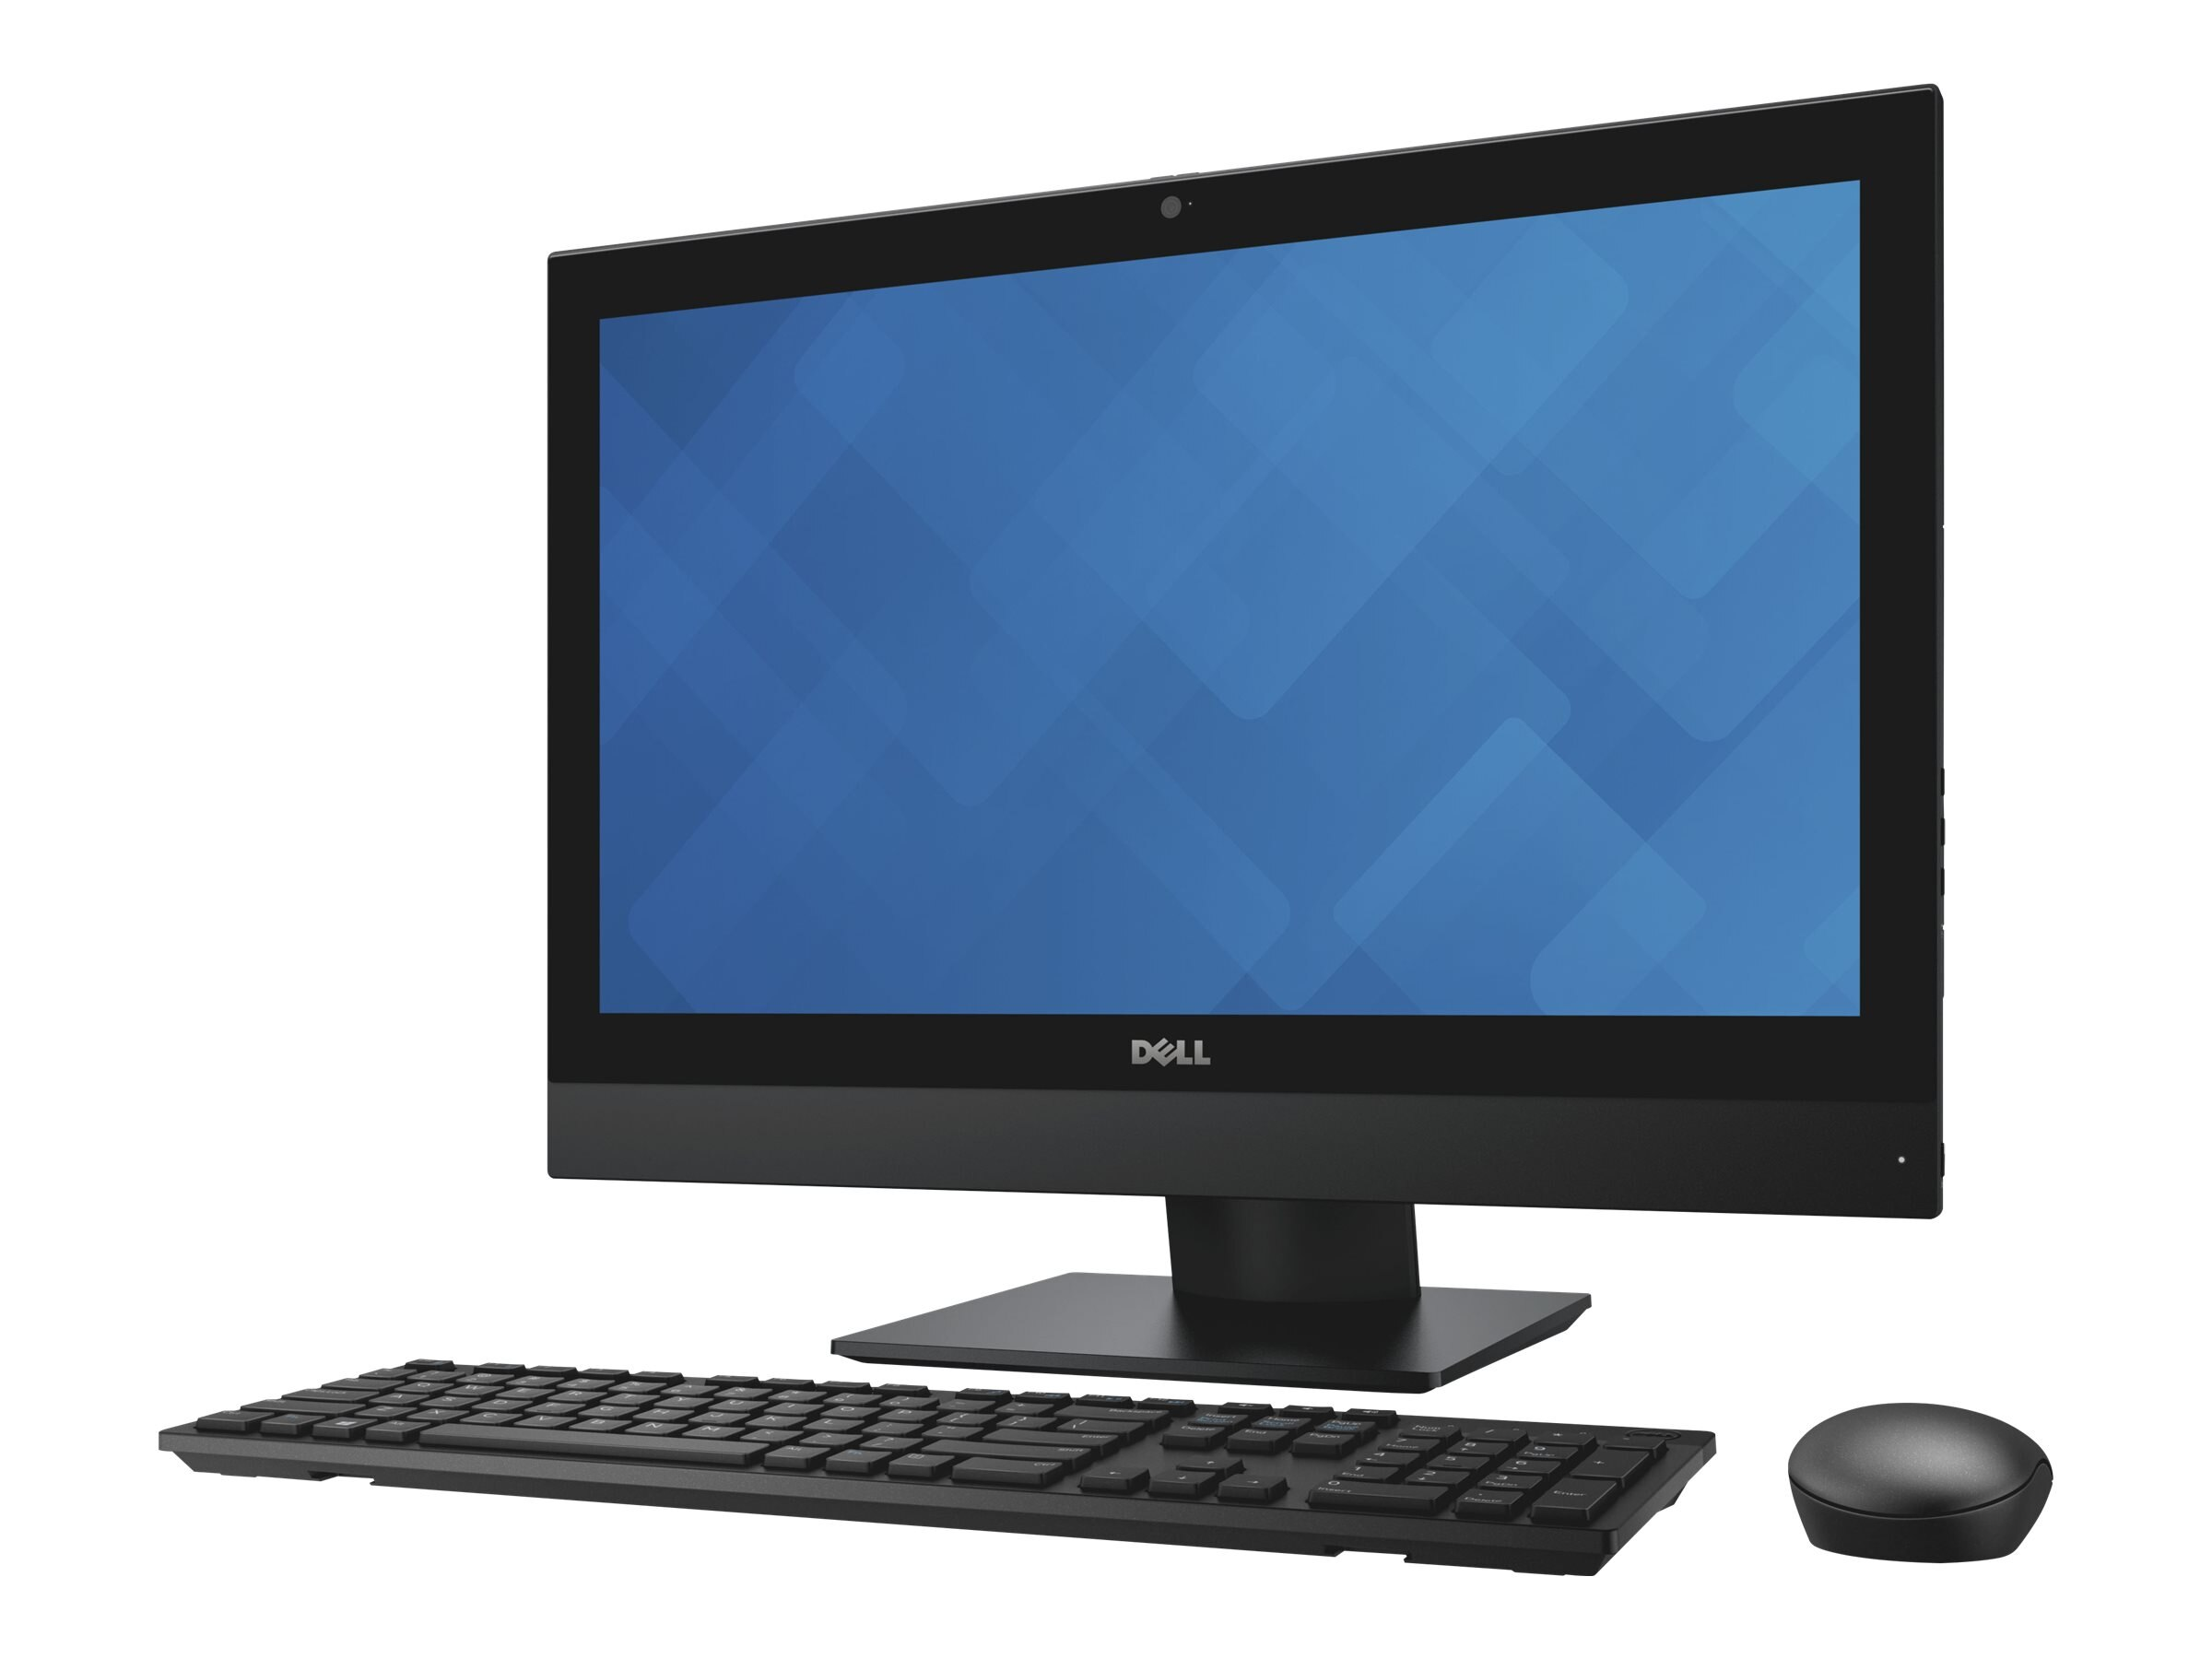 Dell OptiPlex 3240 AIO Core i5-6500 3.2GHz 8GB 500GB DVD+RW GbE ac BT WC 21.5 FHD Touch W8.1P64-W10P, 2HD1J, 30983087, Desktops - All-in-One